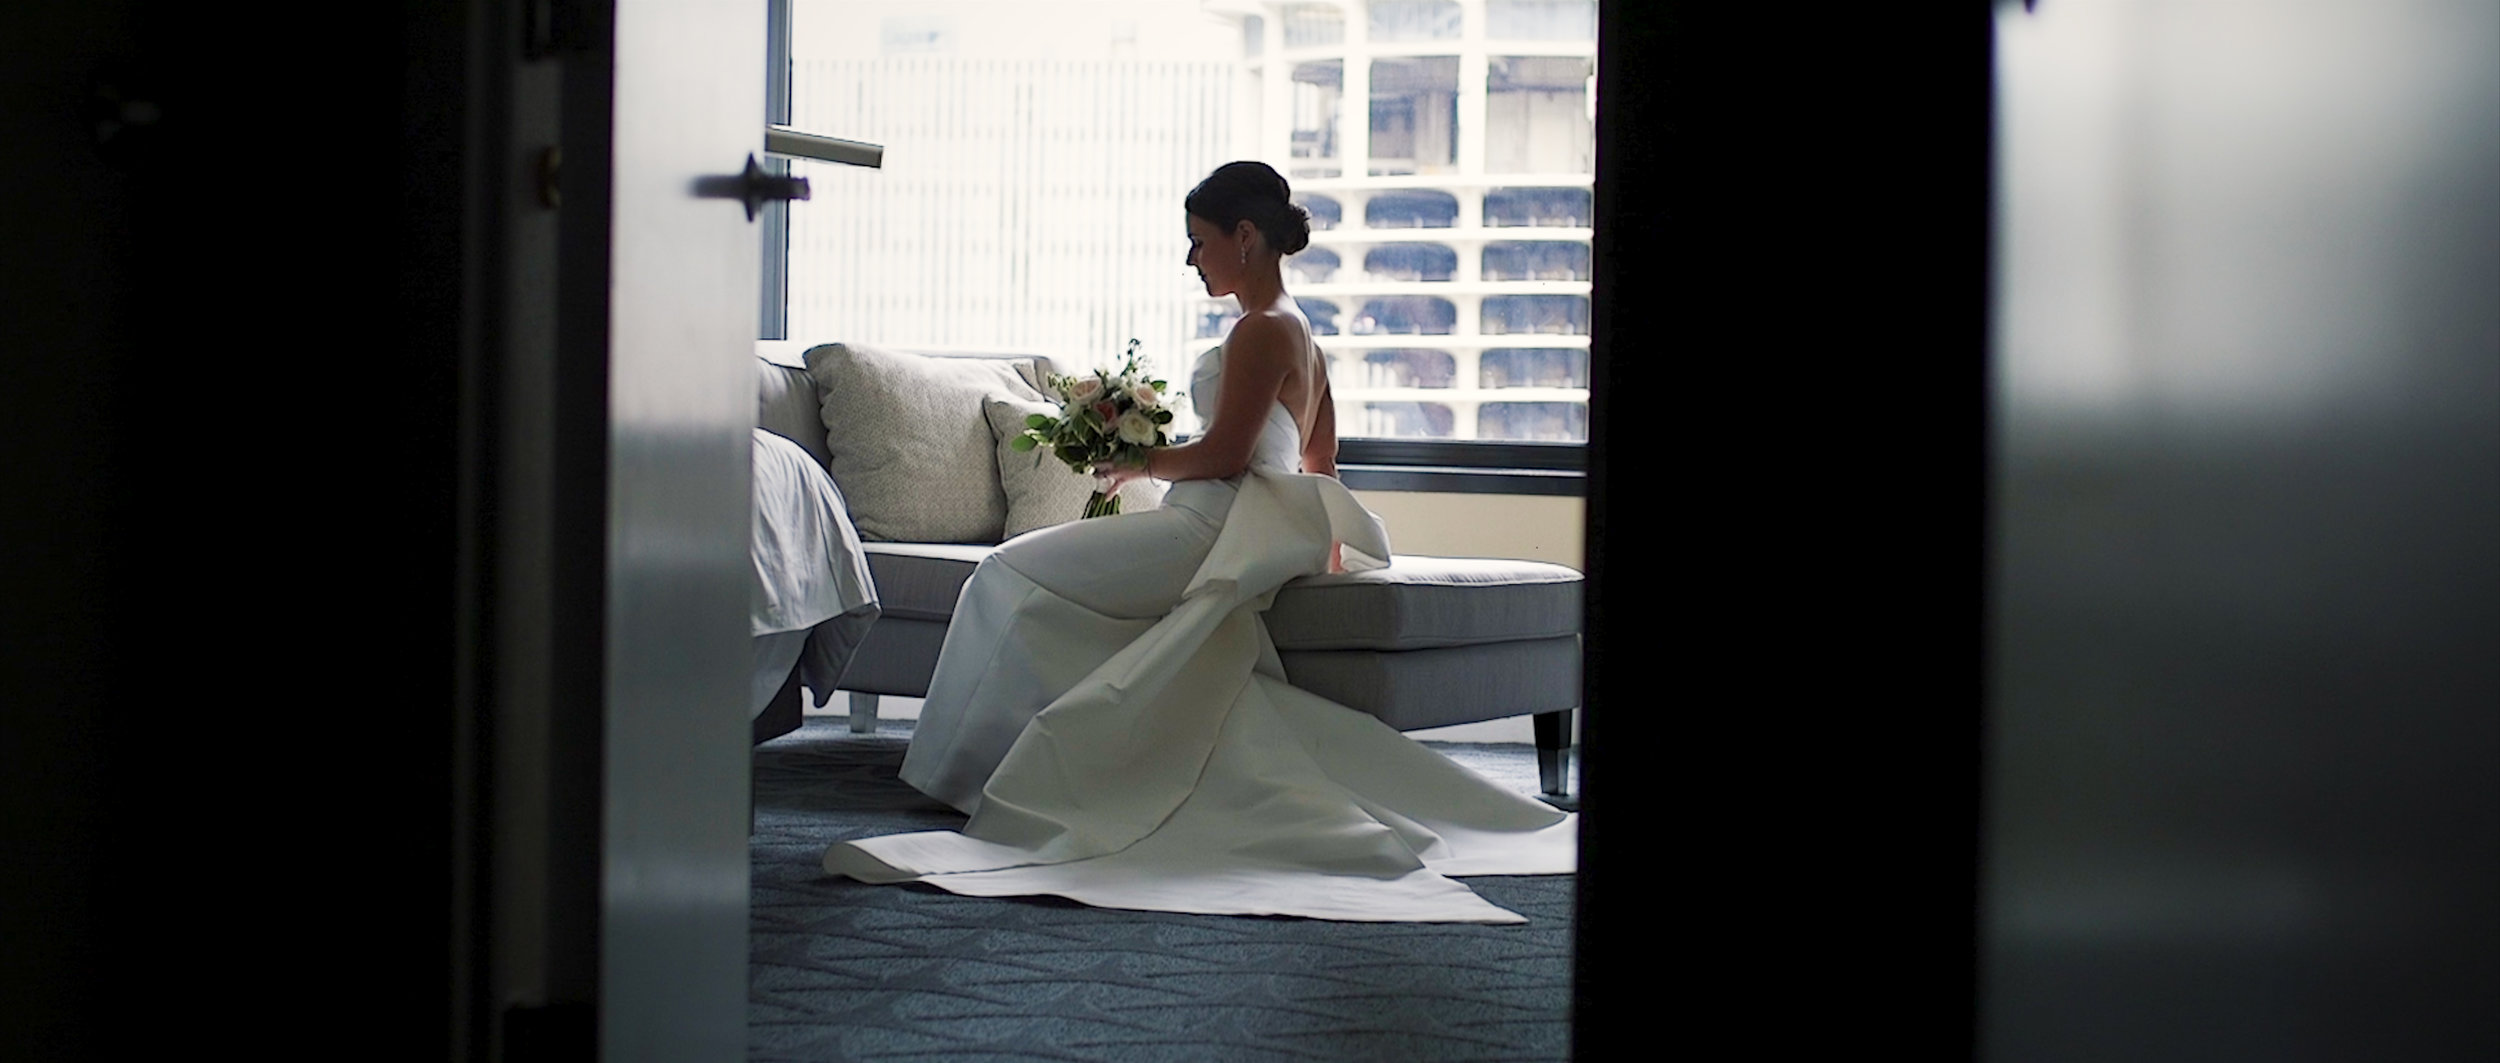 Bride gets ready for wedding at Renaissance Hotel in downtown Chicago.